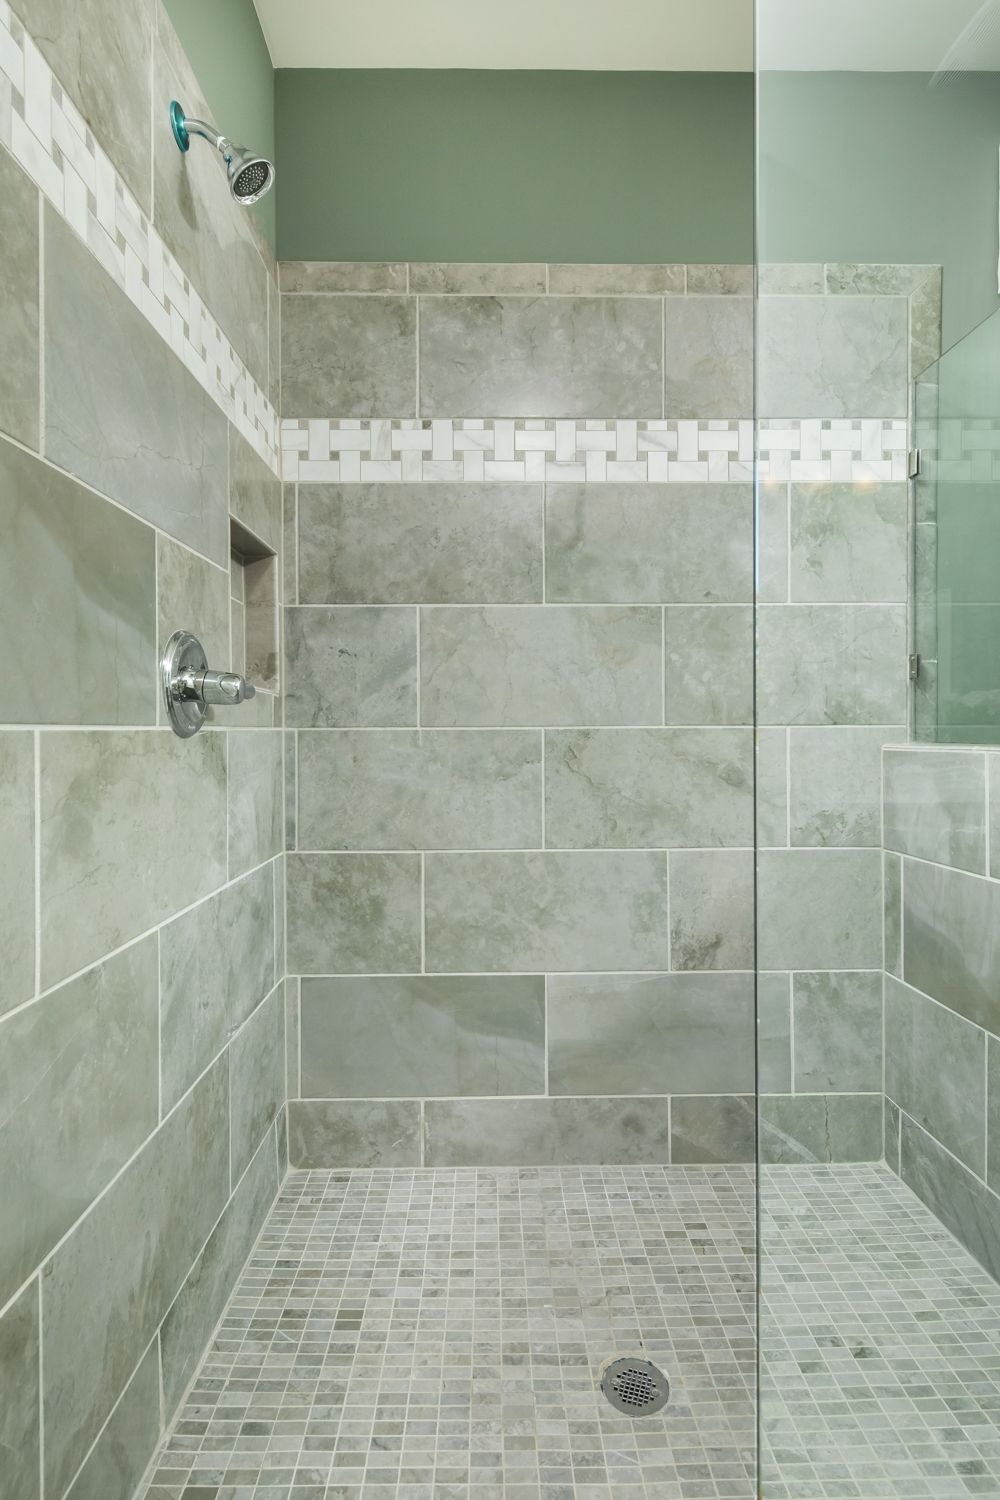 This Shower Had A 12 X 24 Porcelain Wall Tile With A Basket Weave Accent Band This Is A Huge Master Shower W Shower Wall Tile Master Bath Shower Master Shower